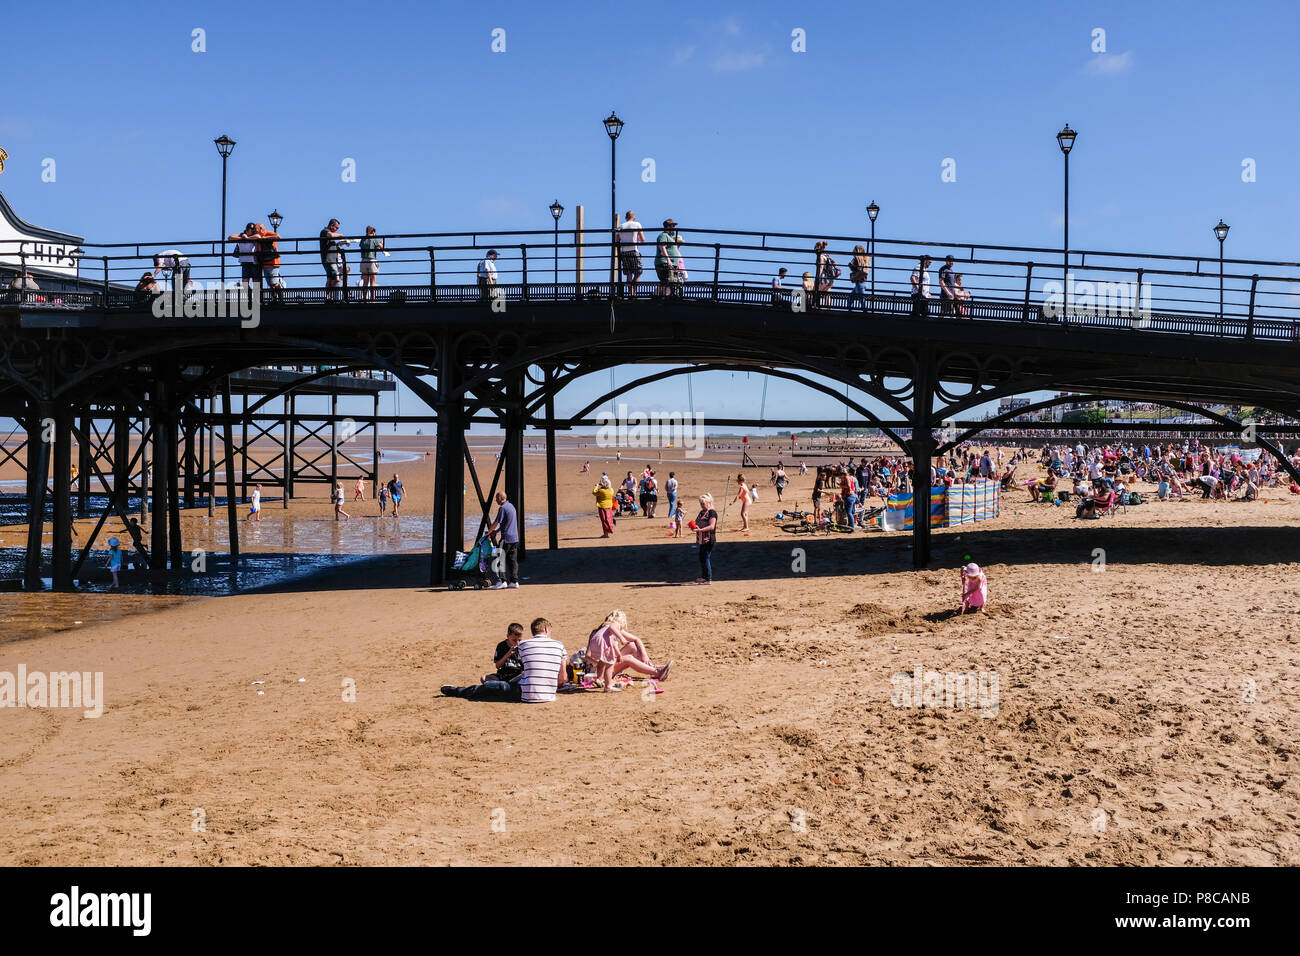 Cleethorpes seafront and pier onn a sunny Armed forces weekend. Cleethorpes England UK - Stock Image